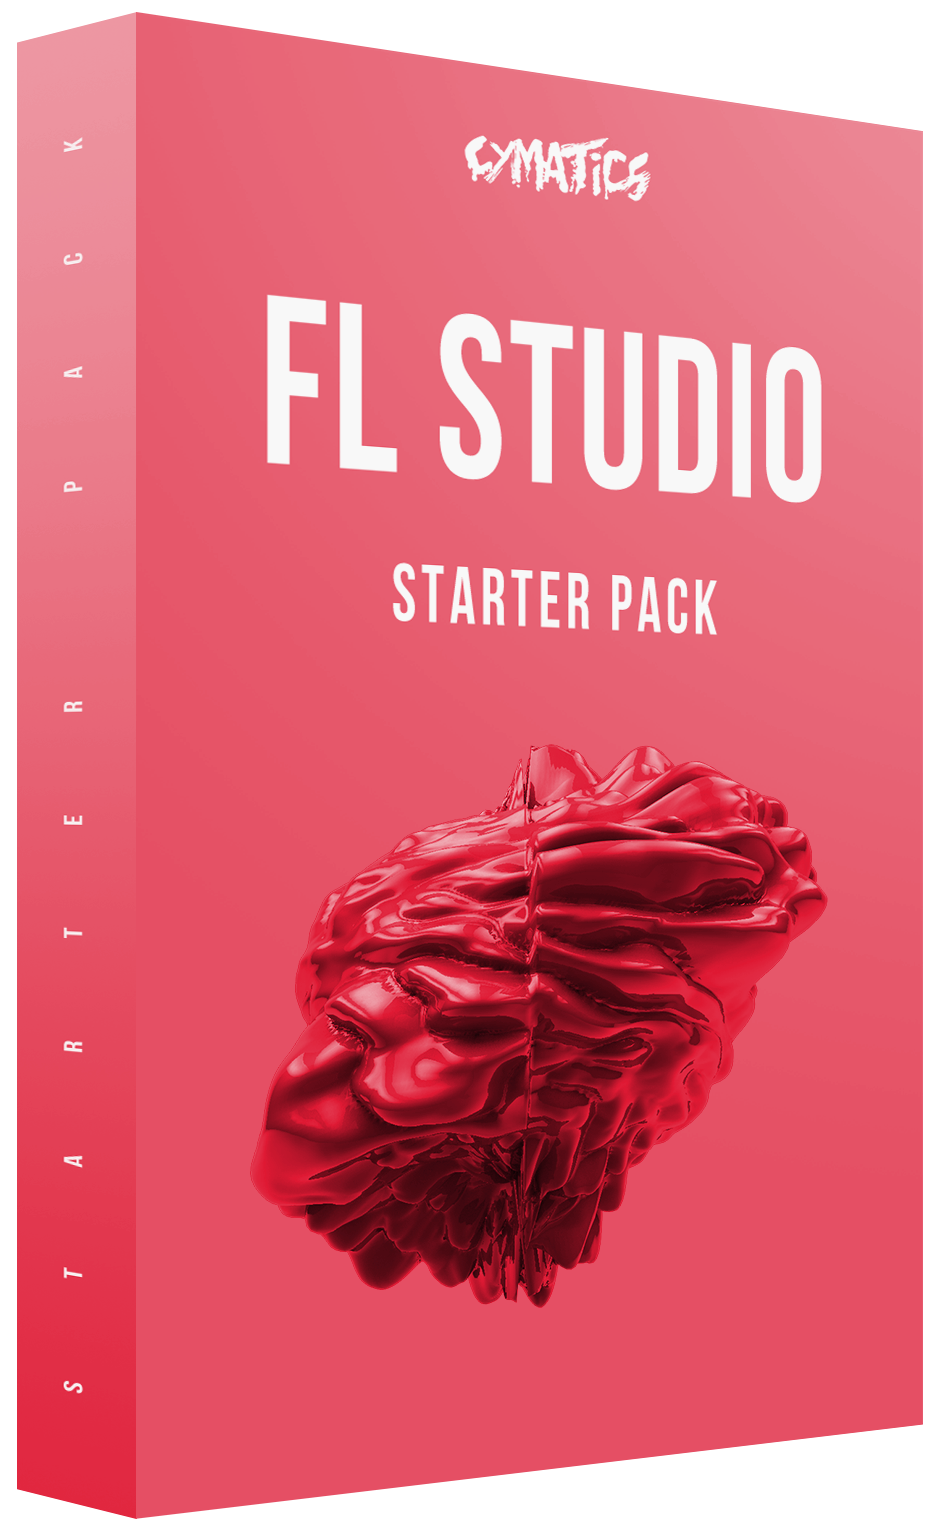 Free Download - FL Studio Starter Pack – Cymatics fm